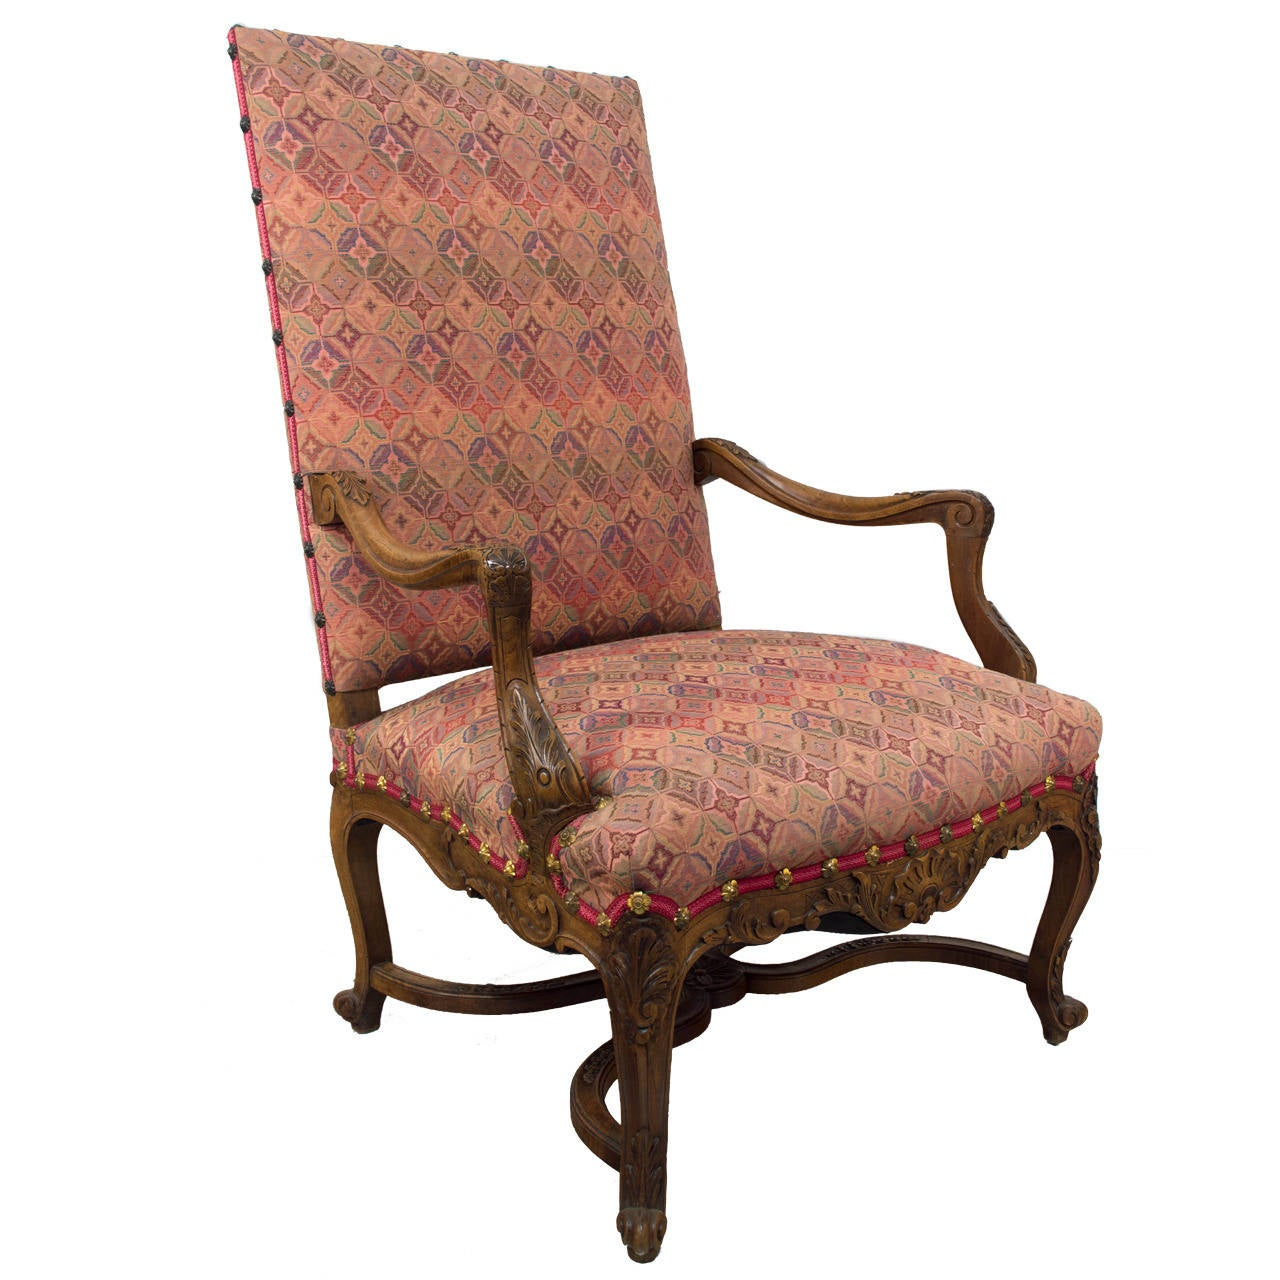 Th French Louis XIII Style Fauteuil Or Arm Chair For Sale At Stdibs - Fauteuil style